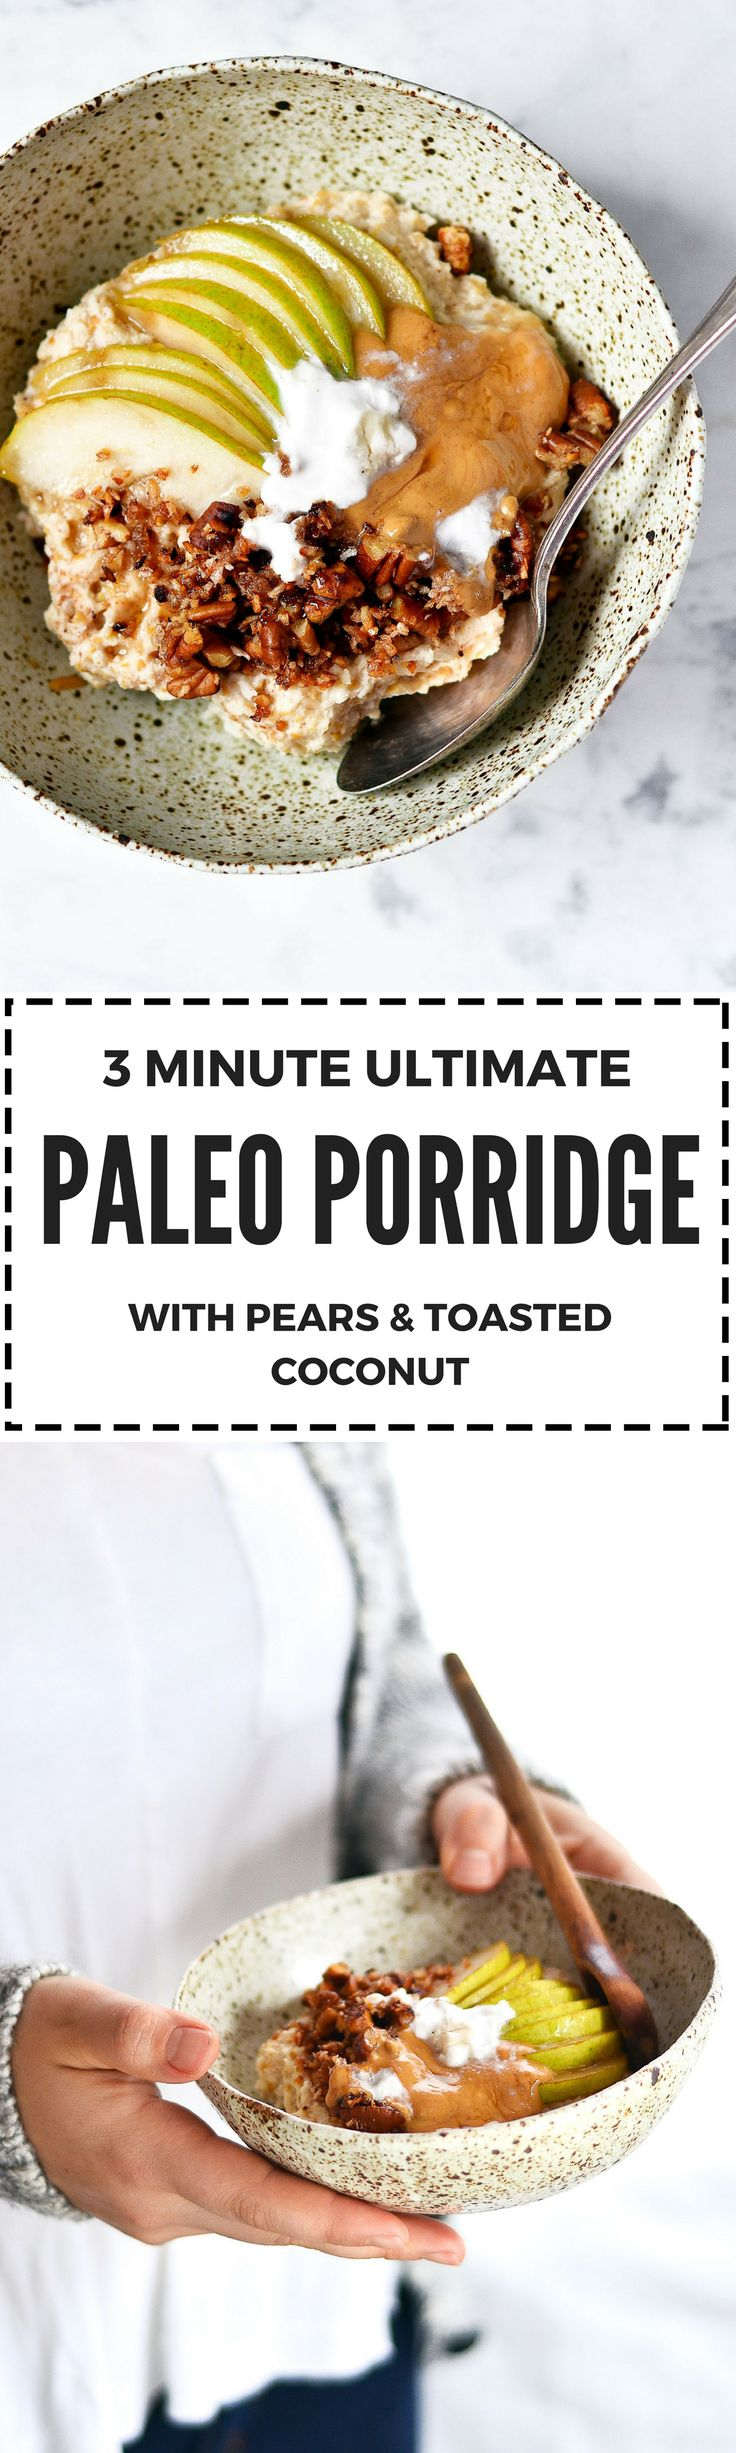 3 minute paleo porridge. Gluten Free, vegan, & grain free! Snuggle up with warm toasty coconut, almond essence, the deep flavors of cinnamon, & pear.